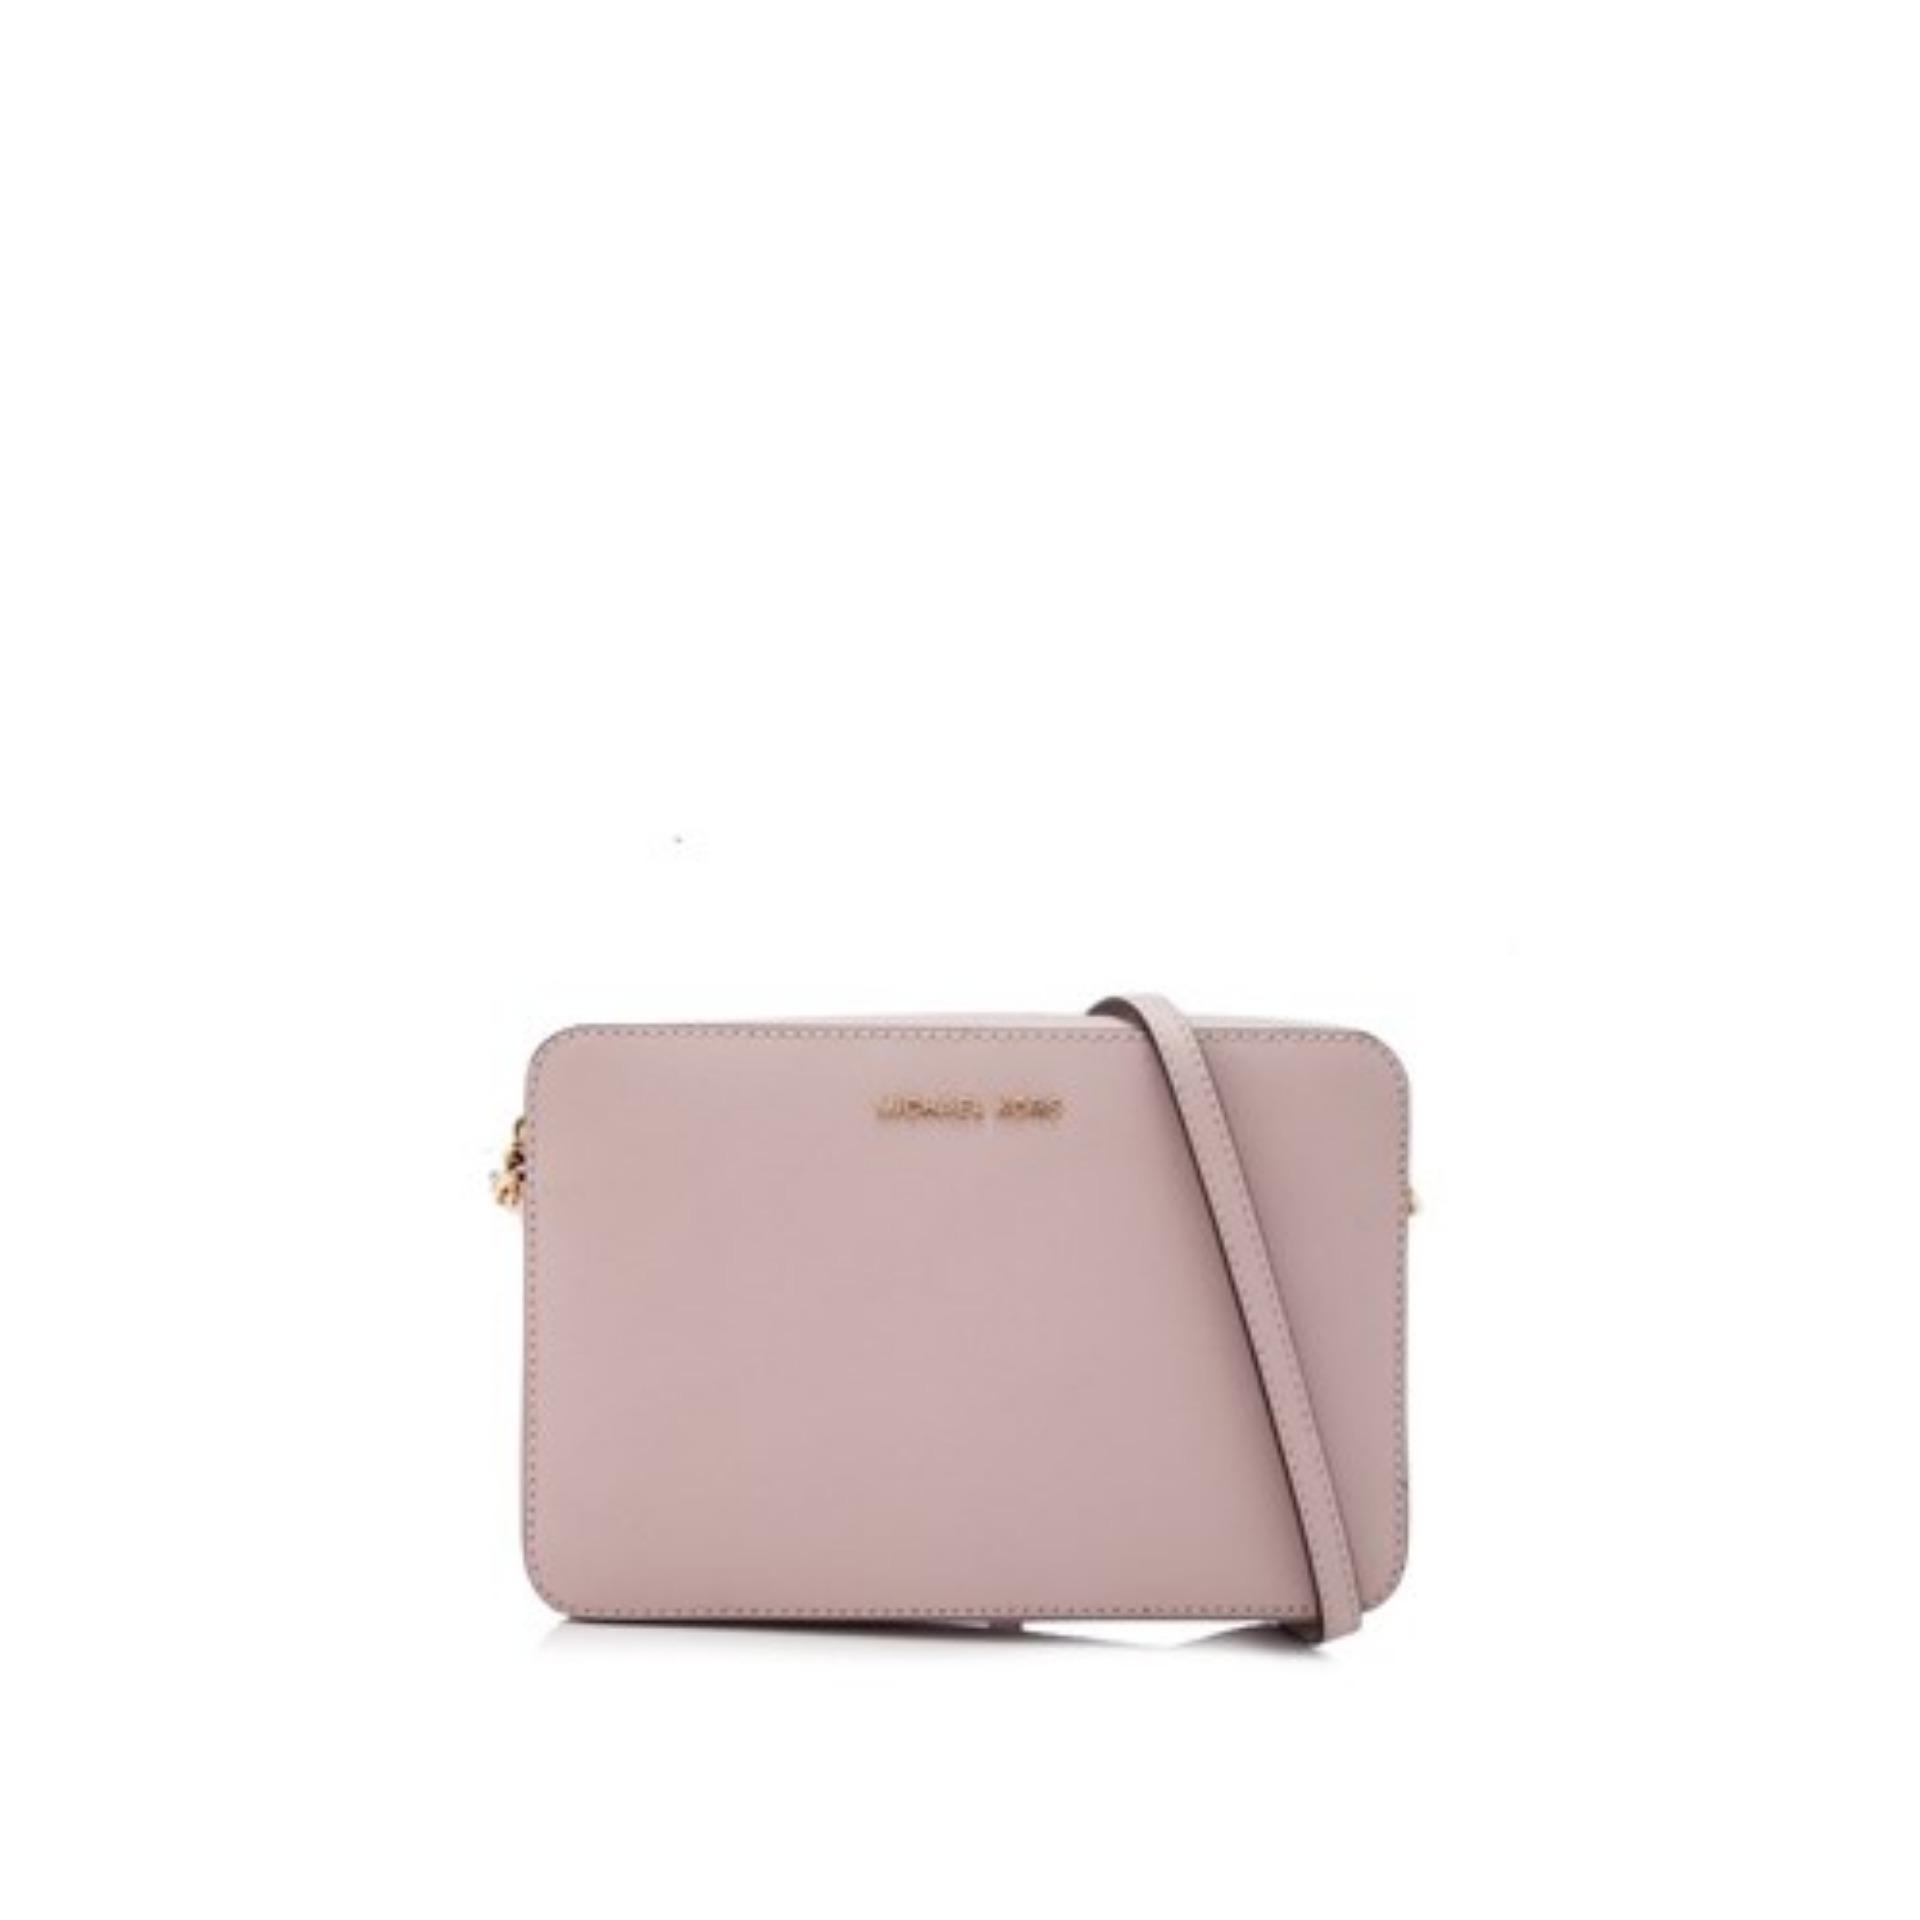 f6bf7c6856c5 Michael Kors Jet Set East West Large Crossbody Bag (Soft Pink) #  32S4GTVC3LSOFTPINK